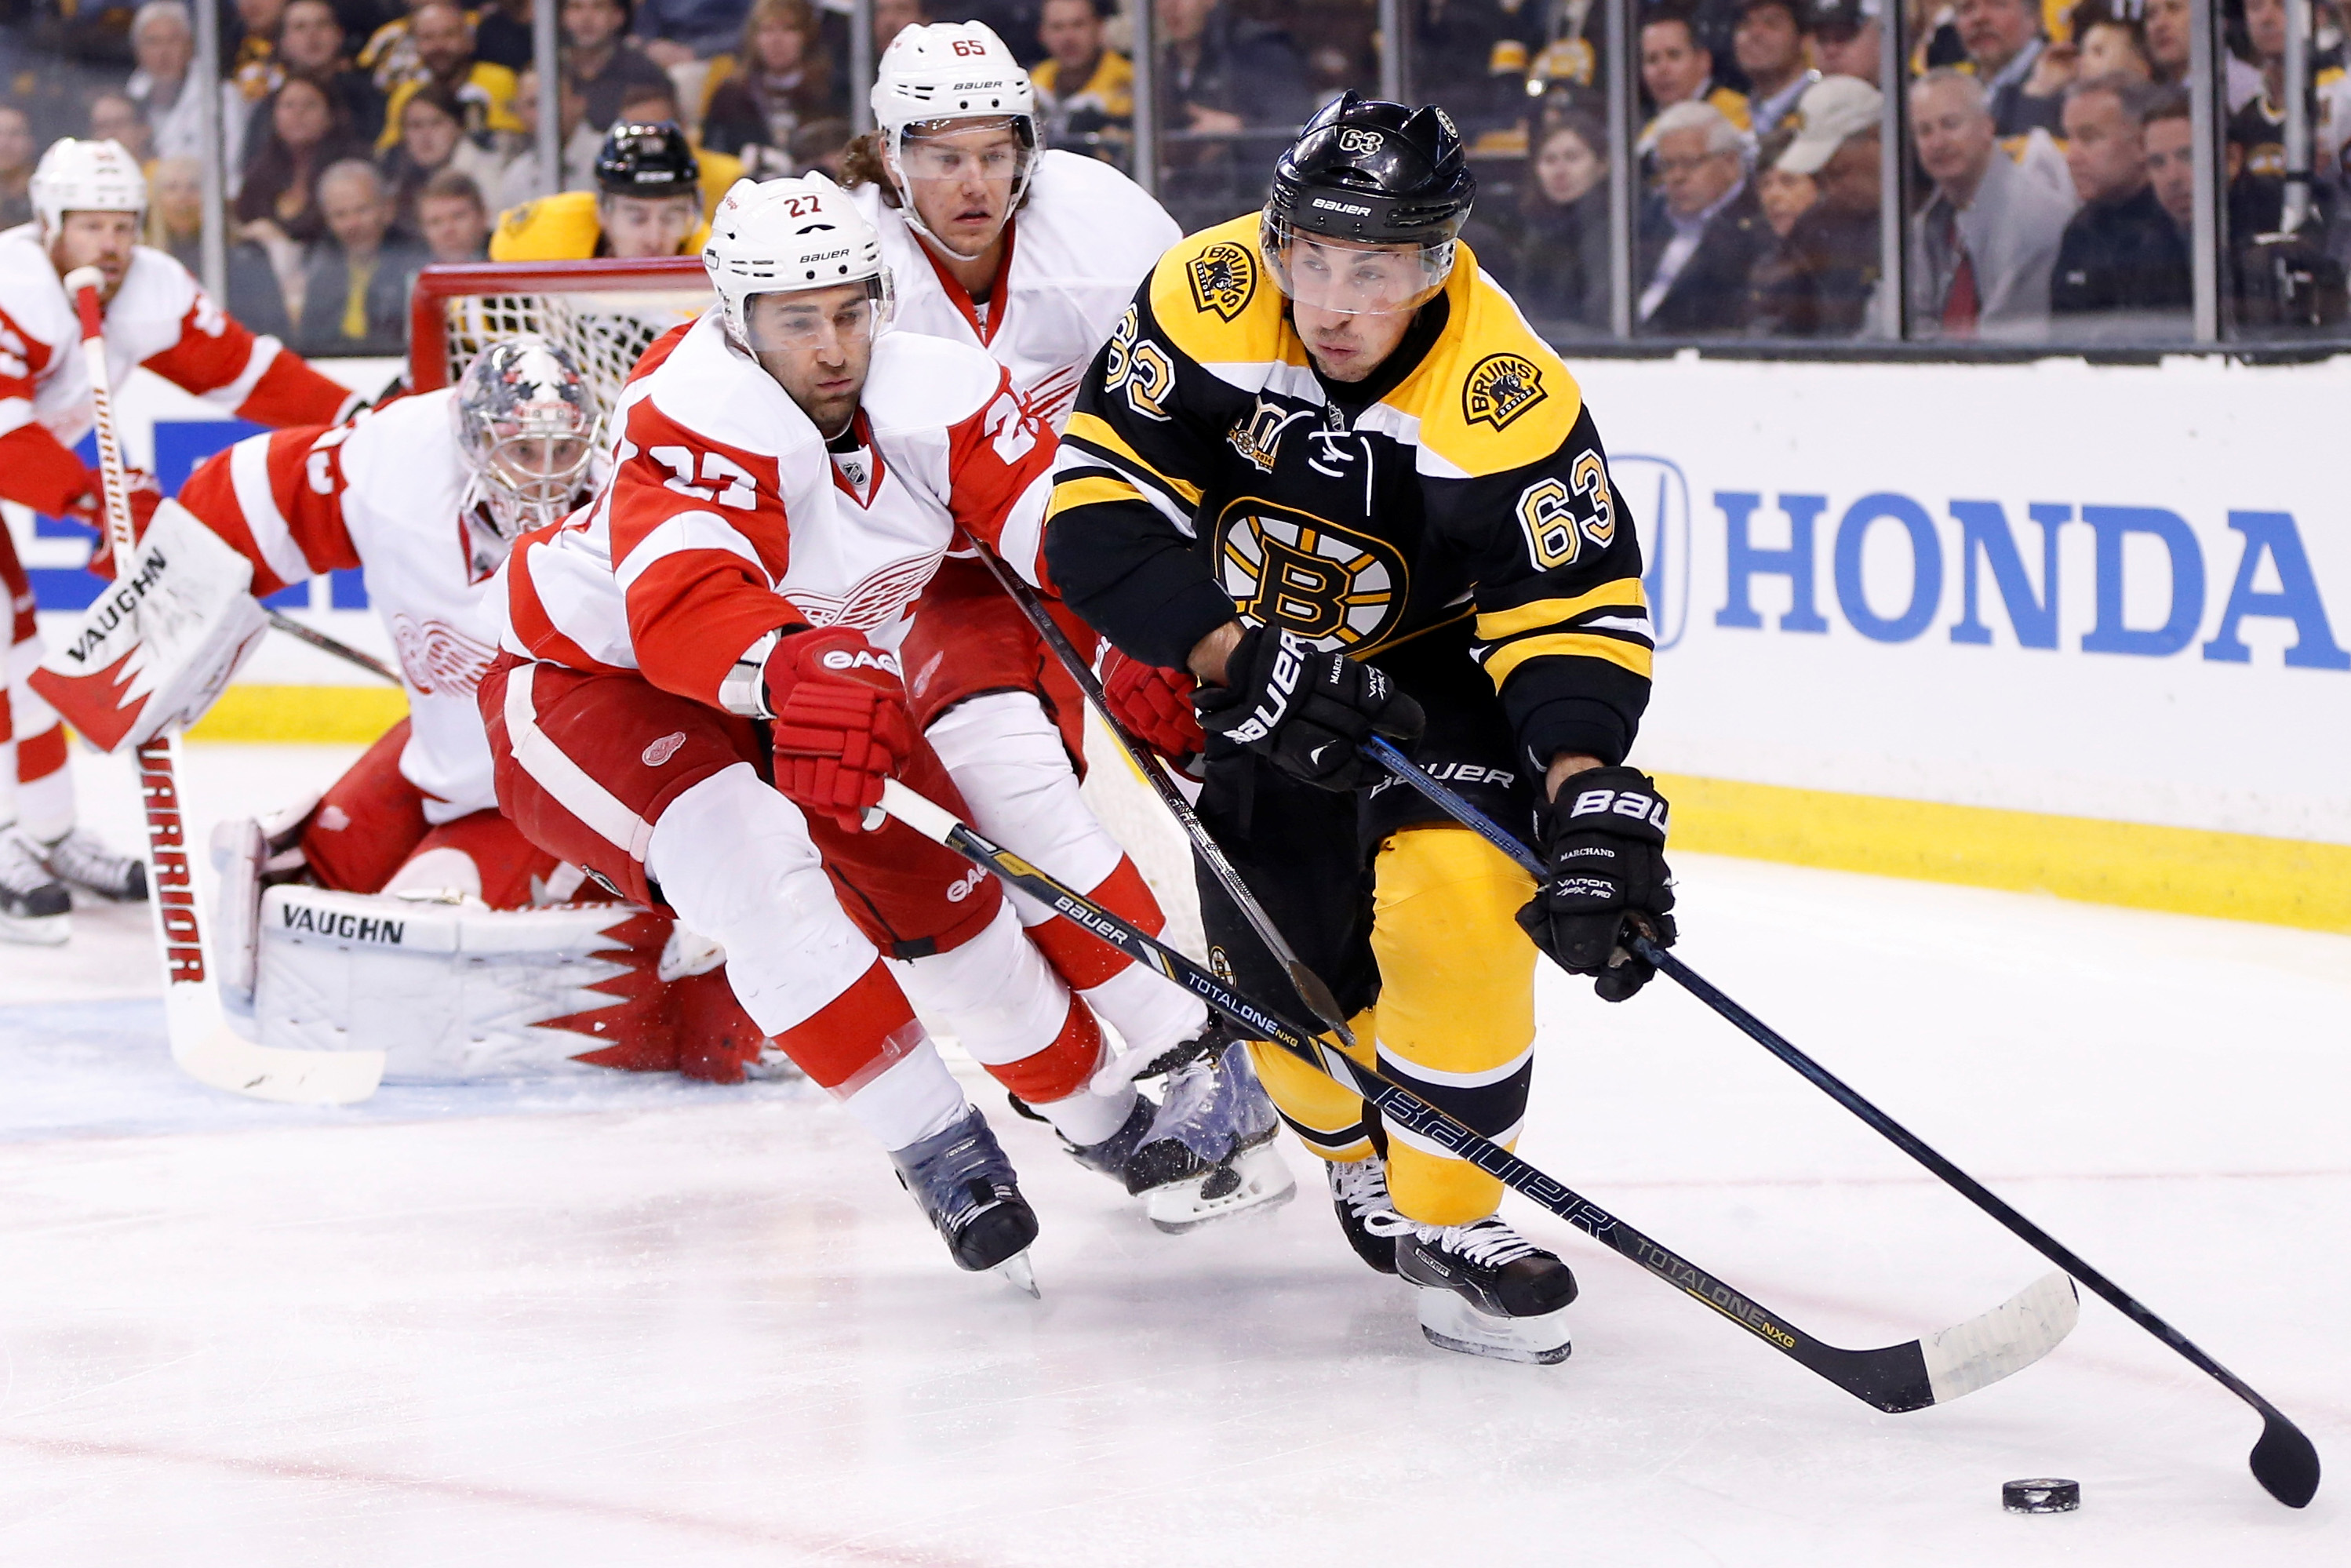 Brad Marchand's Playoff Production Problem: Bruins Want Less Pest, More Scoring